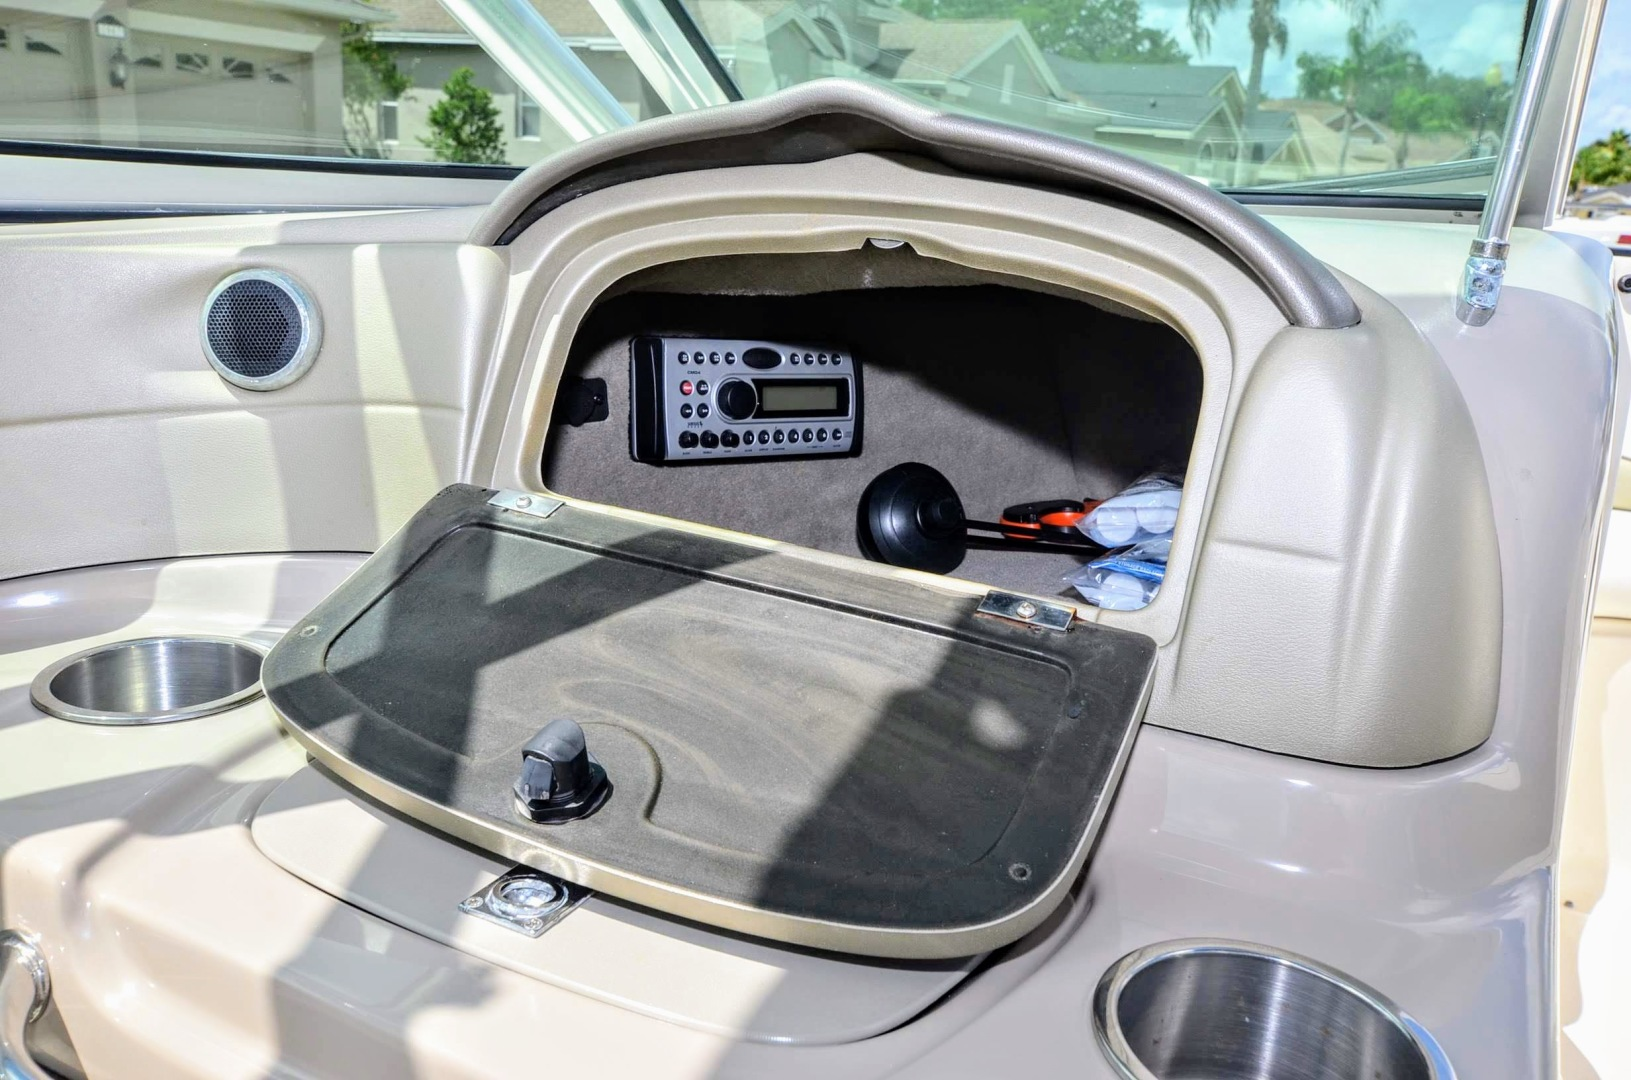 Glove box with Stereo